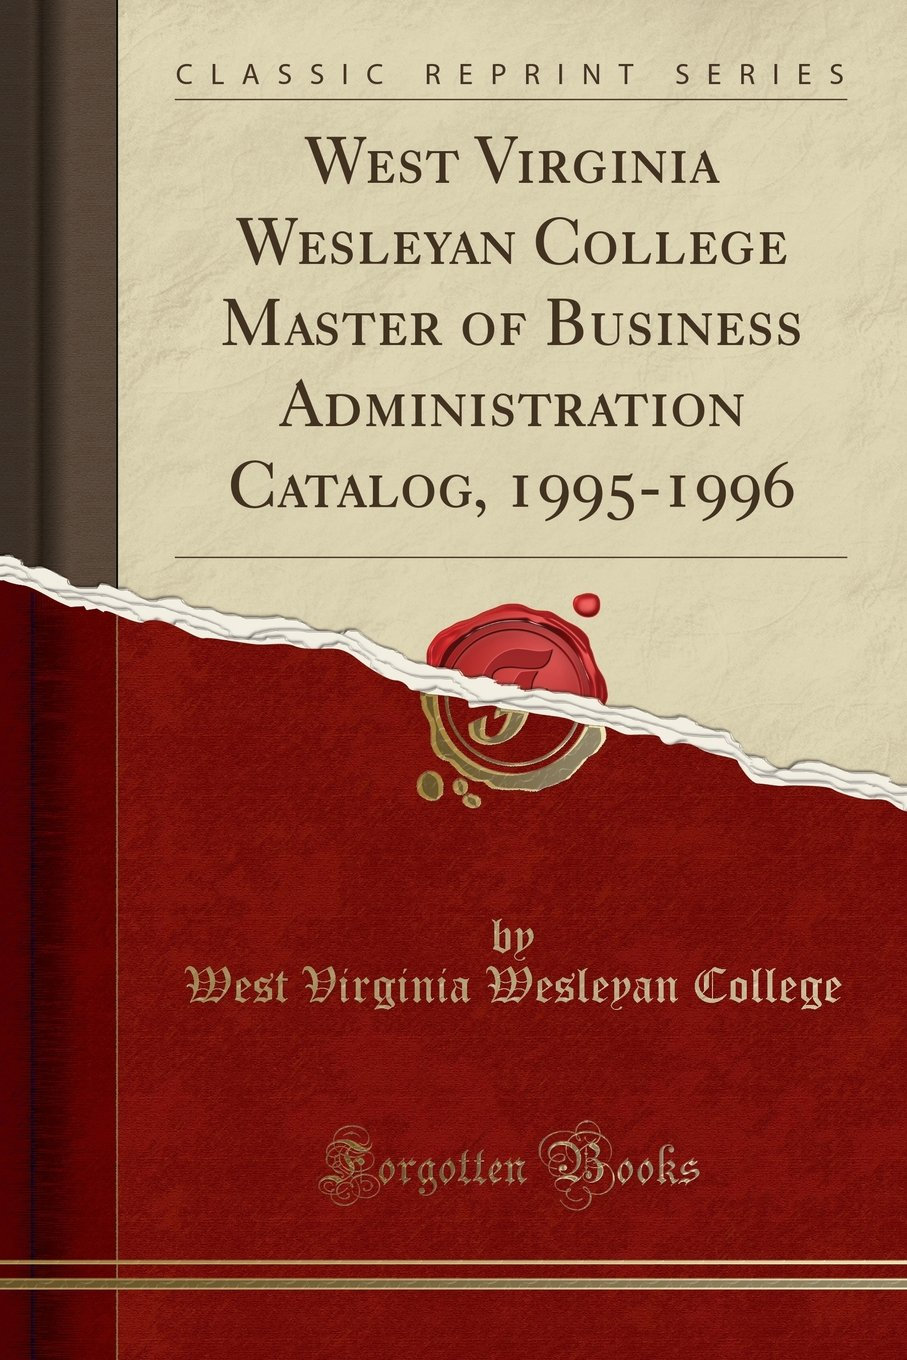 Download West Virginia Wesleyan College Master of Business Administration Catalog, 1995-1996 (Classic Reprint) ebook